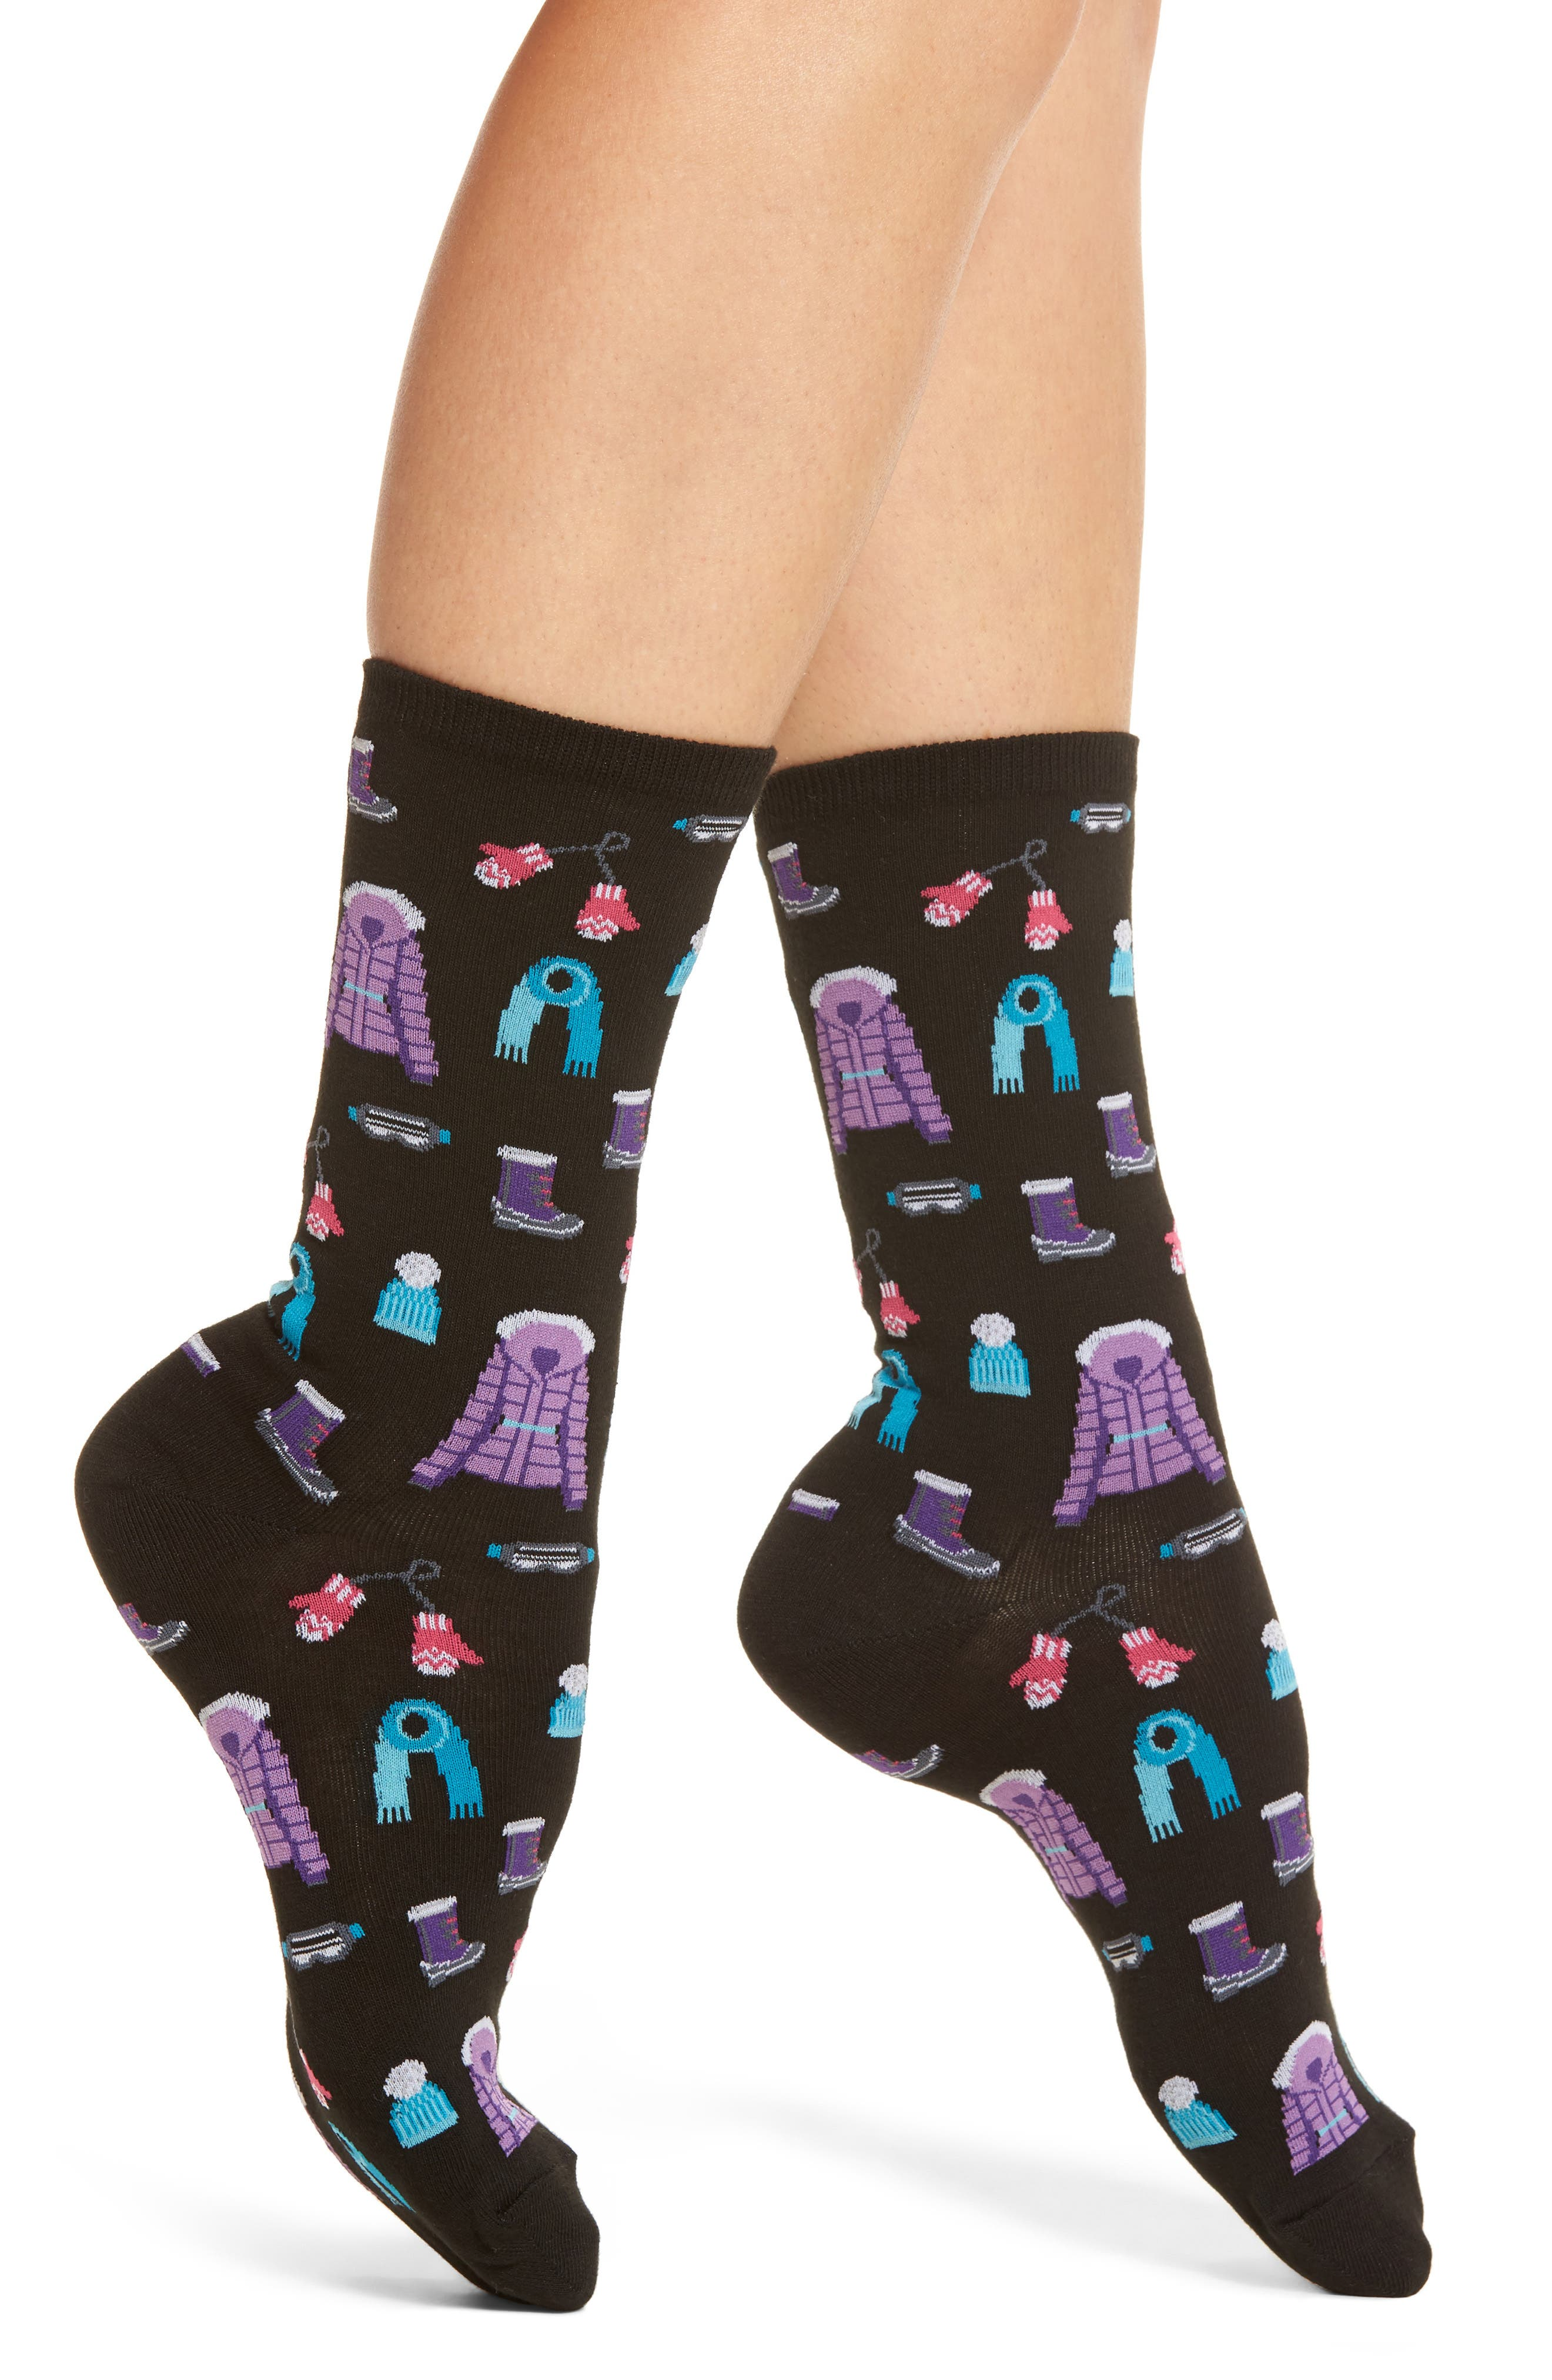 Alternate Image 1 Selected - Hot Sox Ski Clothes Crew Socks (3 for $15)